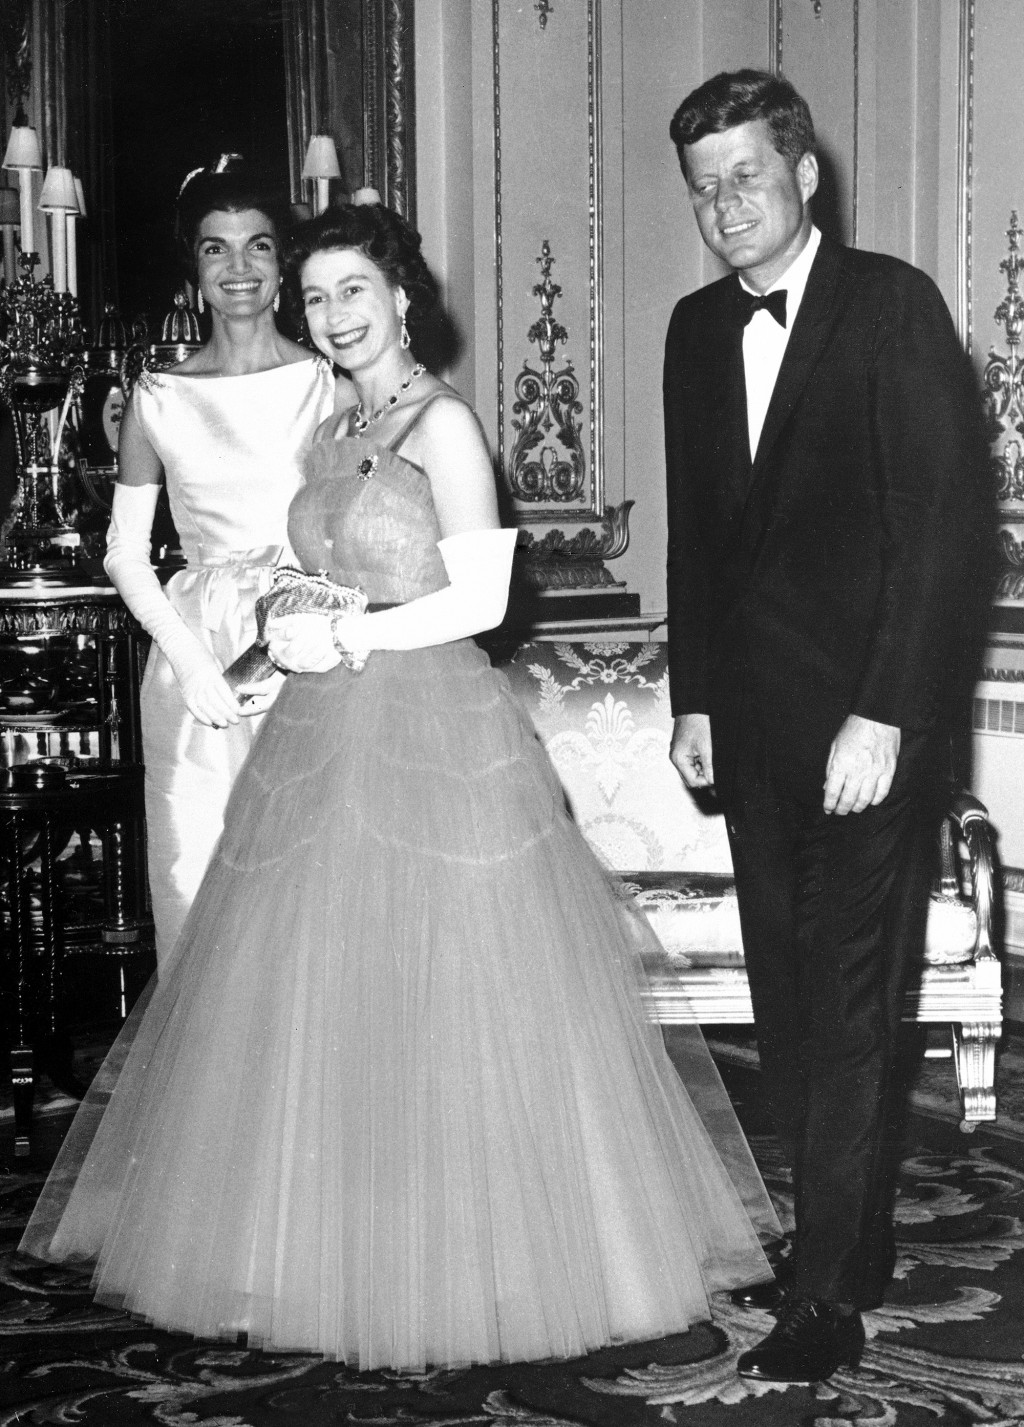 FILE - In this file photo dated June 5, 1961, Britain's Queen Elizabeth II, centre, walks with US President John F. Kennedy, right, and his wife Jacqu